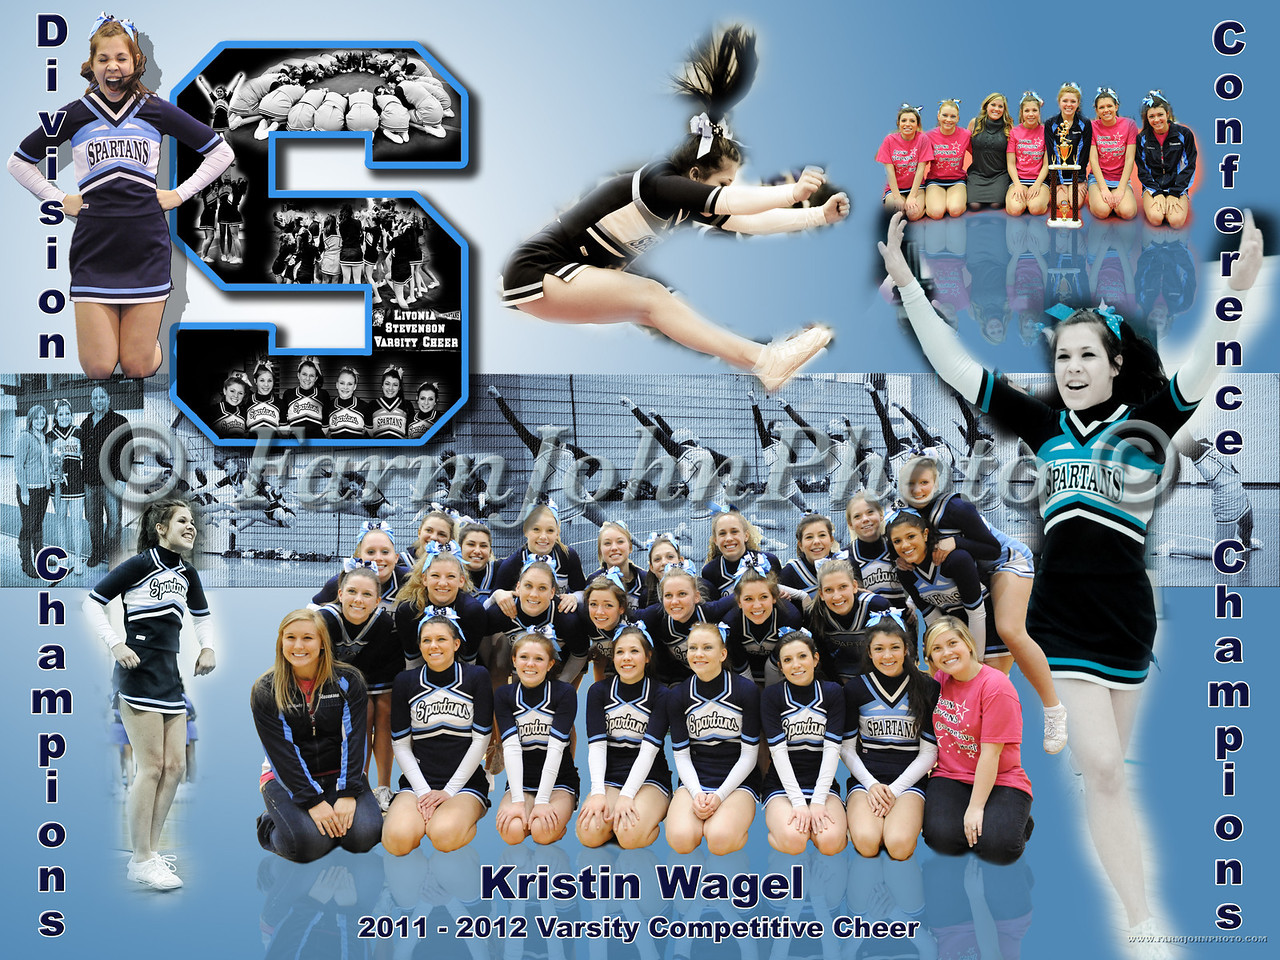 Kristin Wagel 24 x 18 Format Proof 4